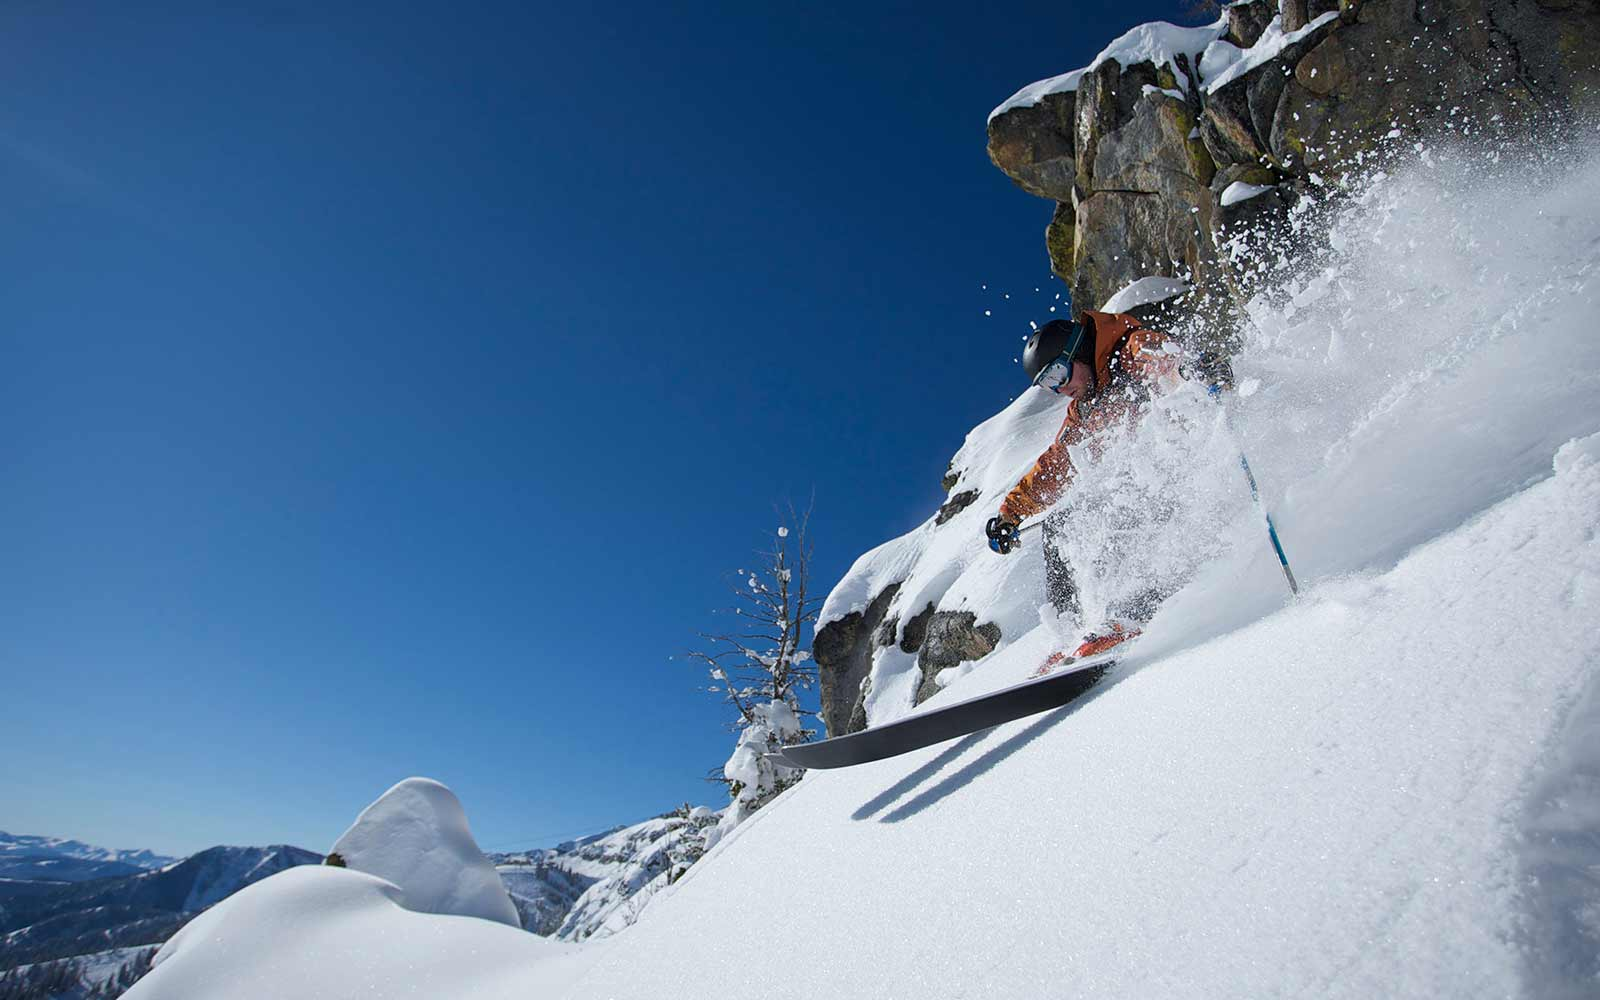 The Best Week to Ski This Winter